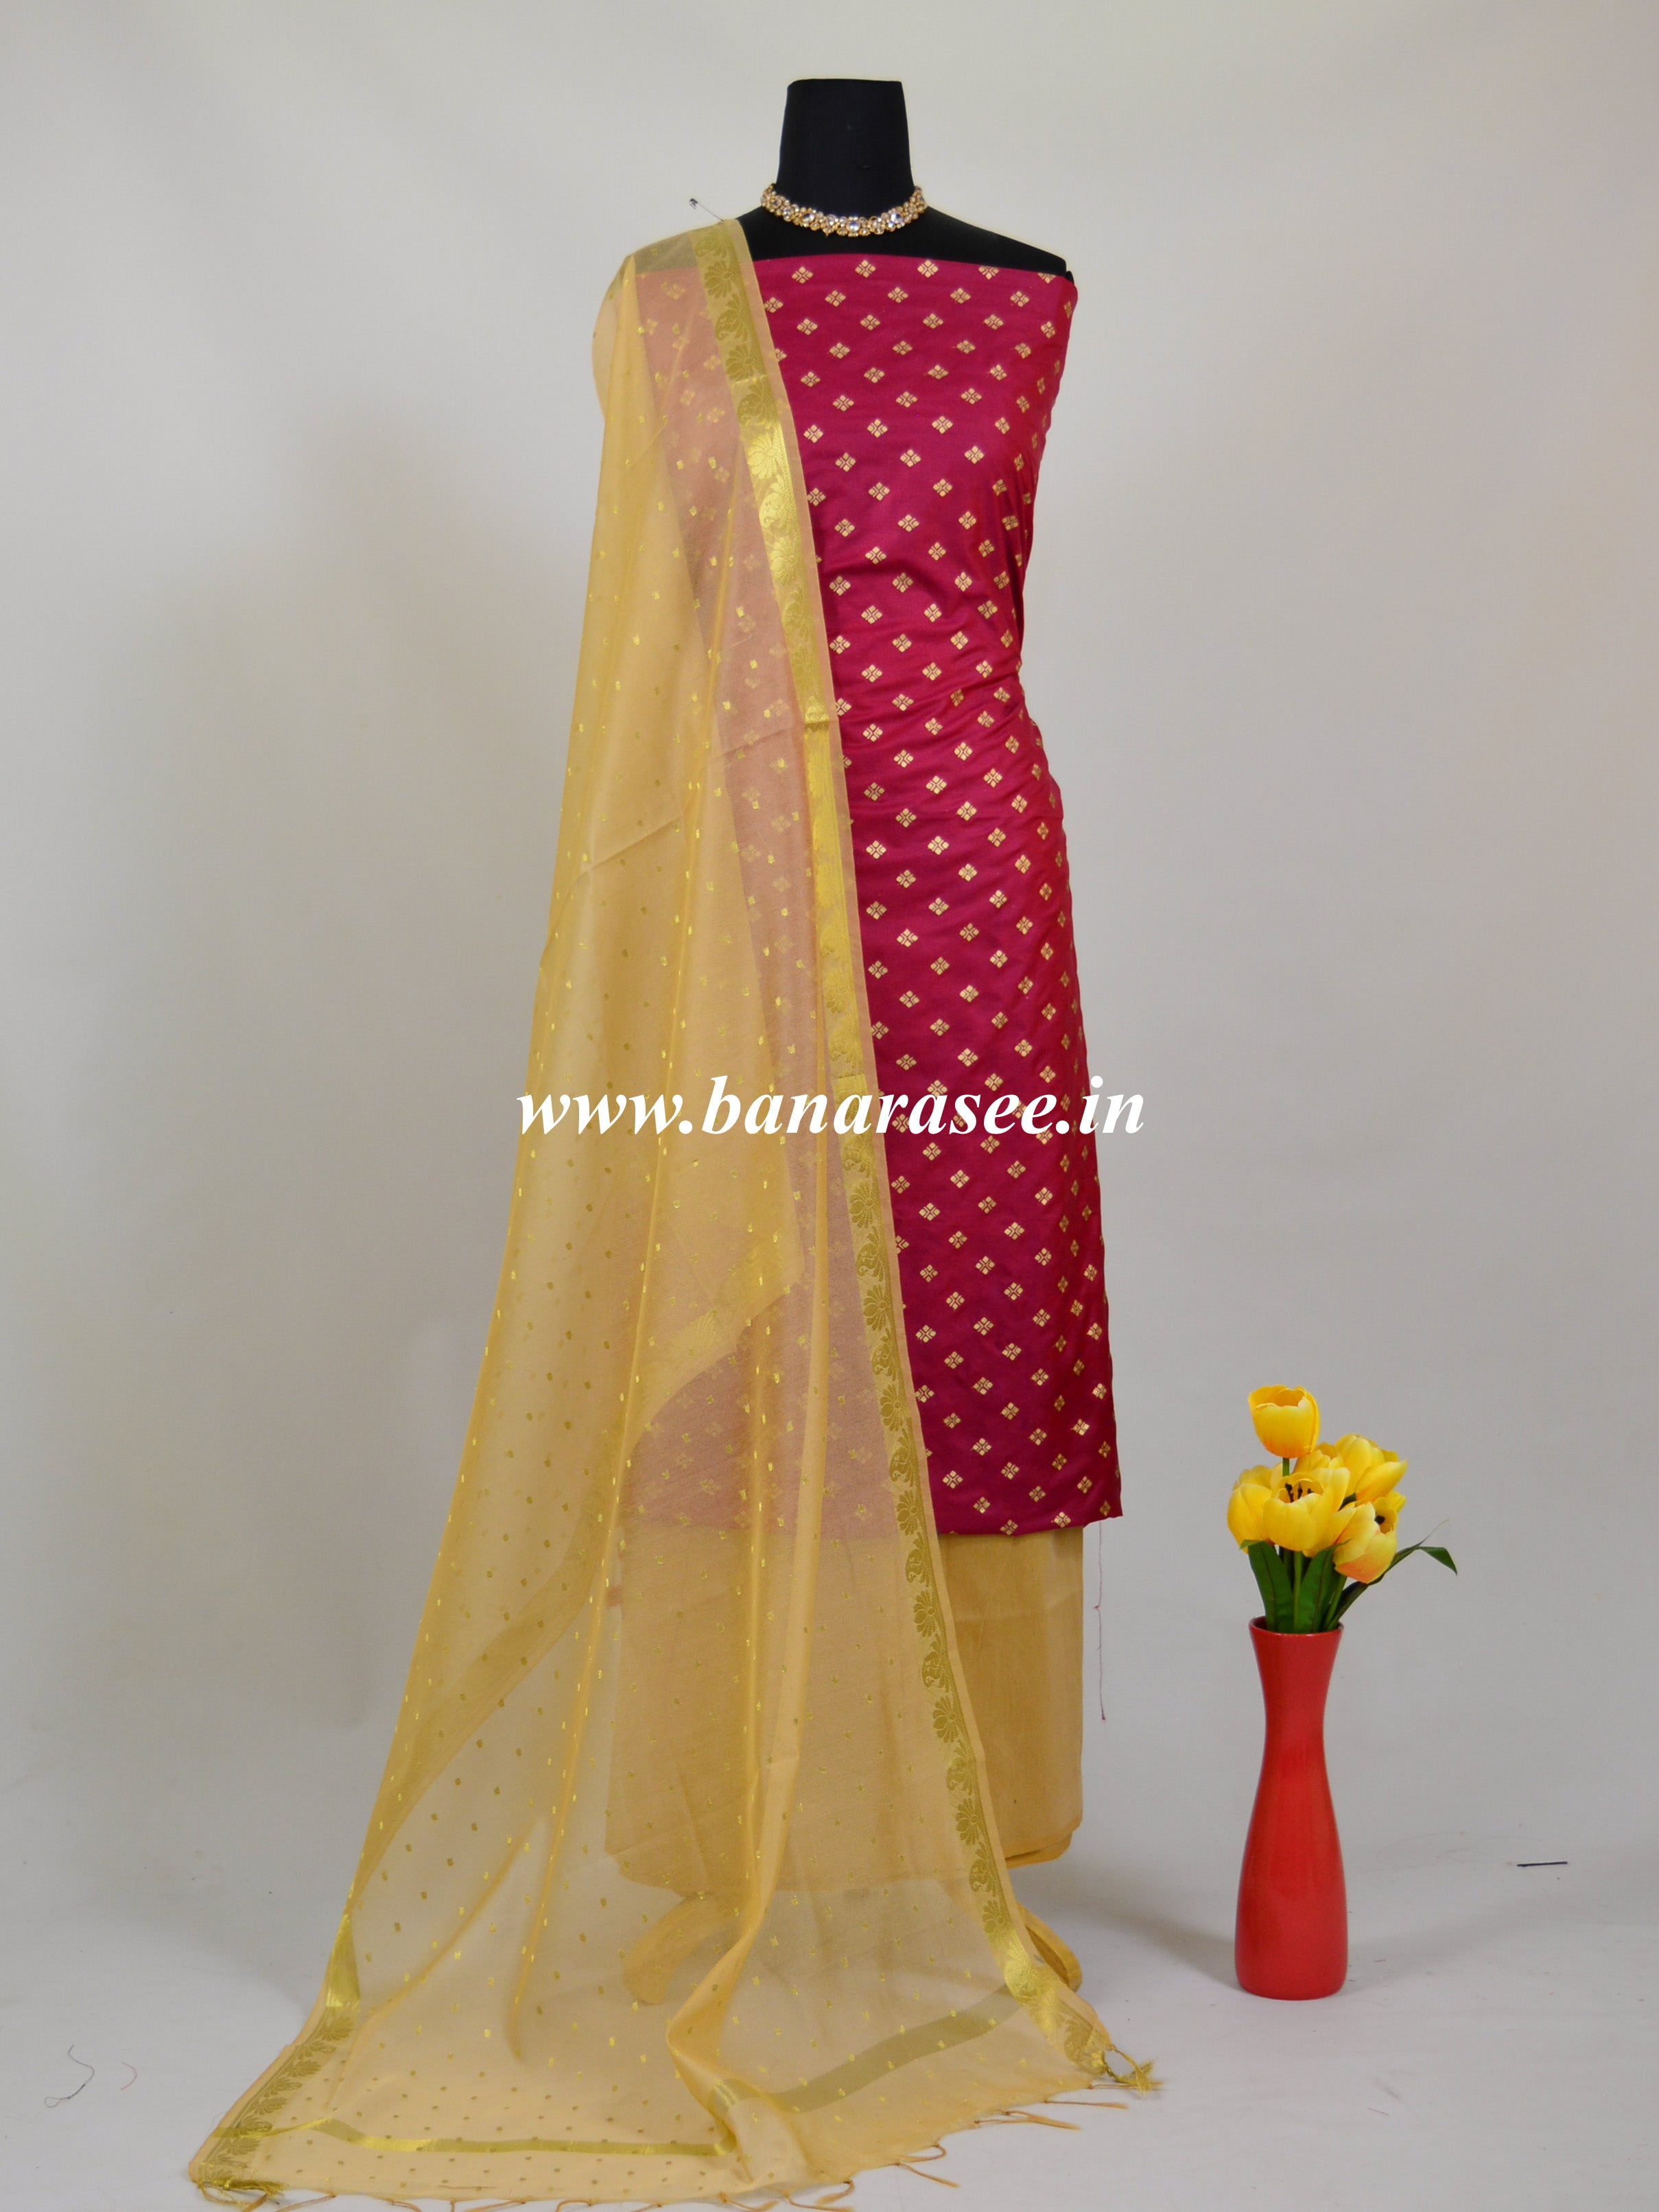 Banarasee Semi Silk Salwar Kameez Fabric With Gold Dupatta-Wine